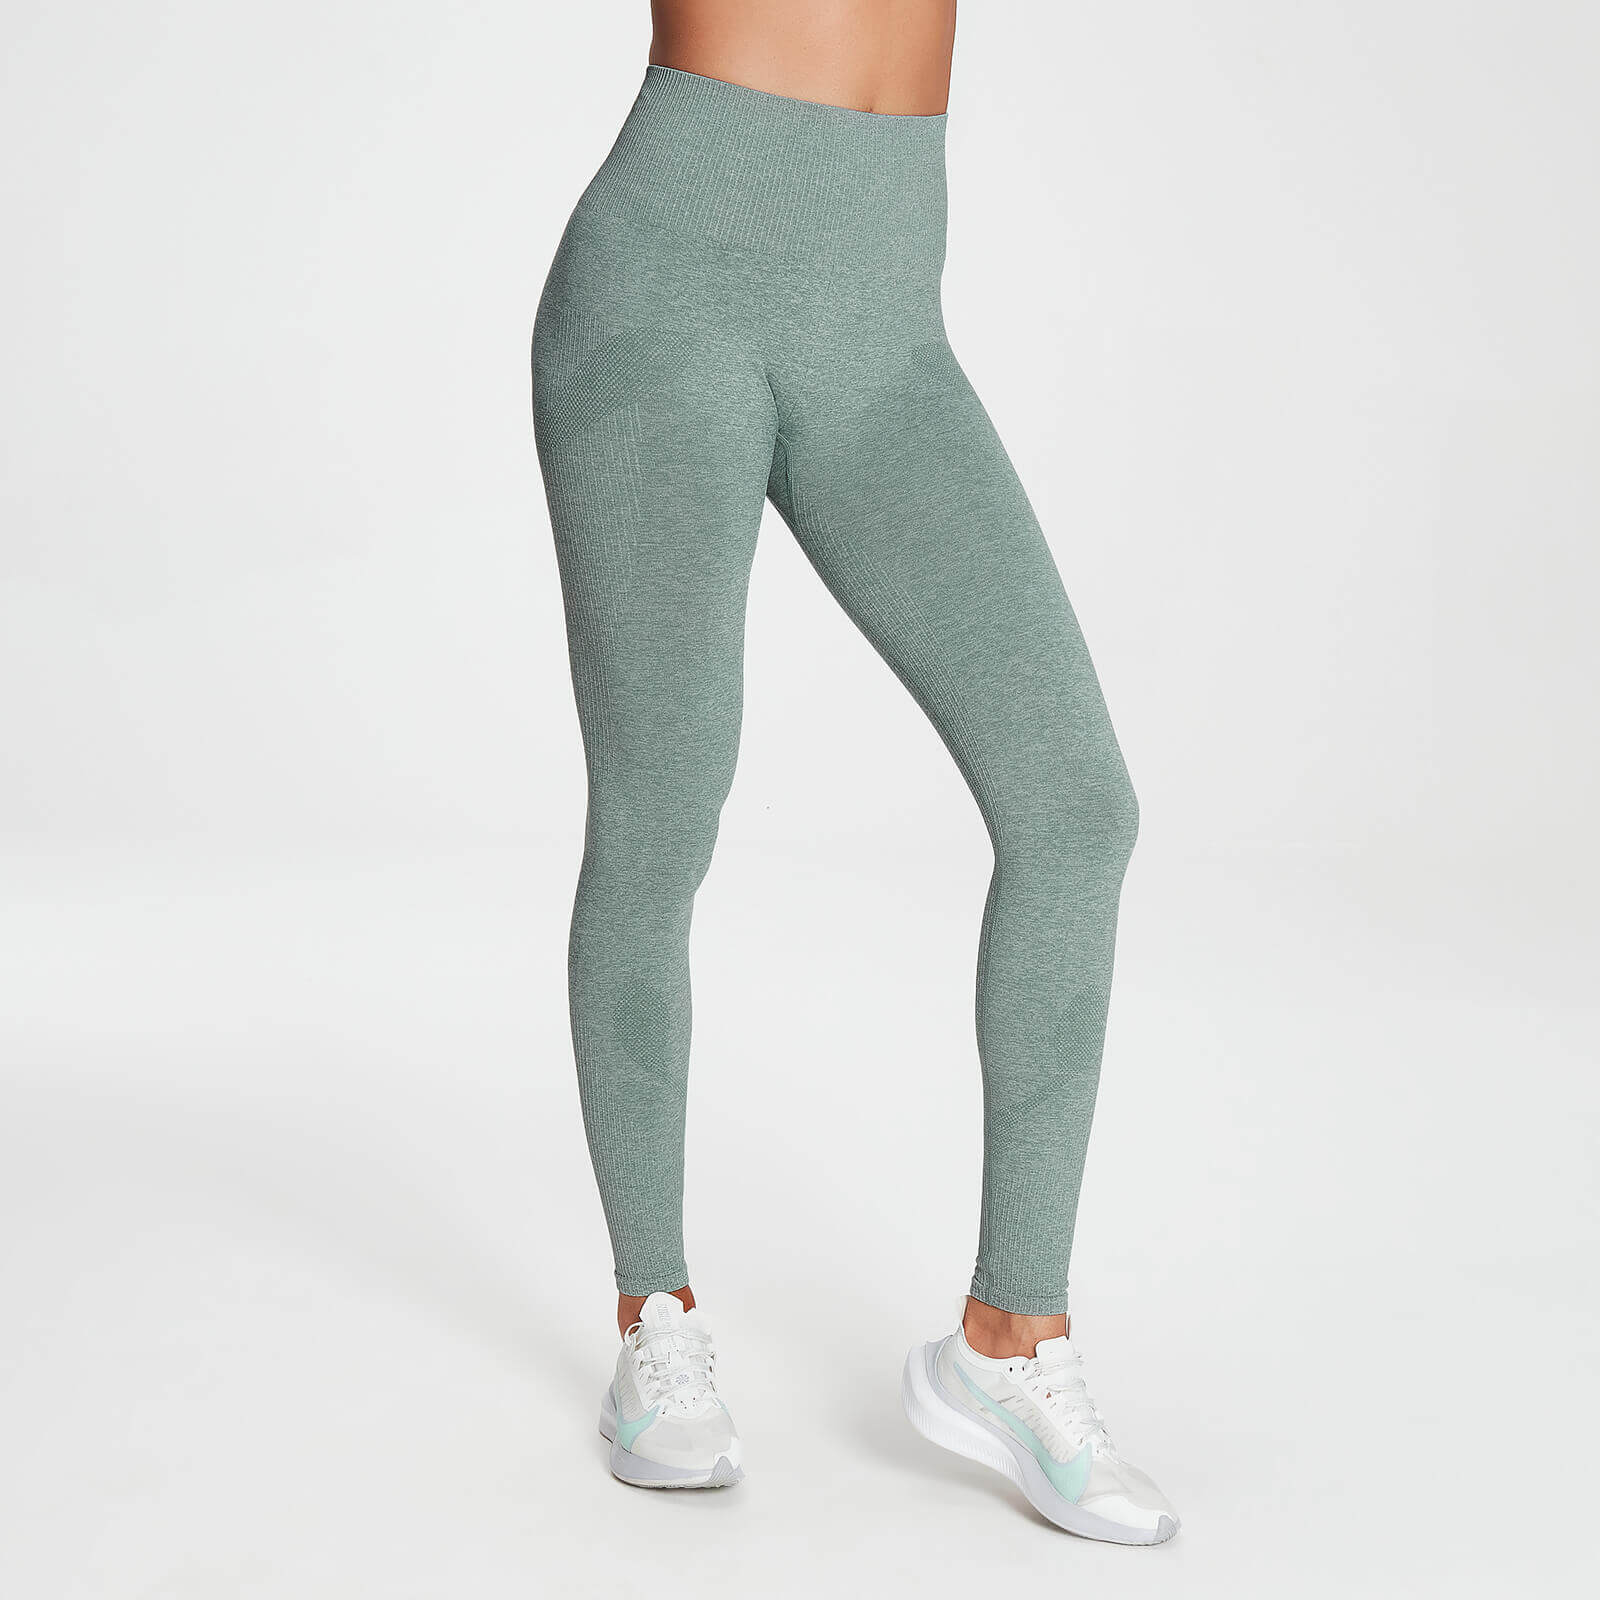 MP Women's Raw Training Seamless Leggings - Washed Green - L